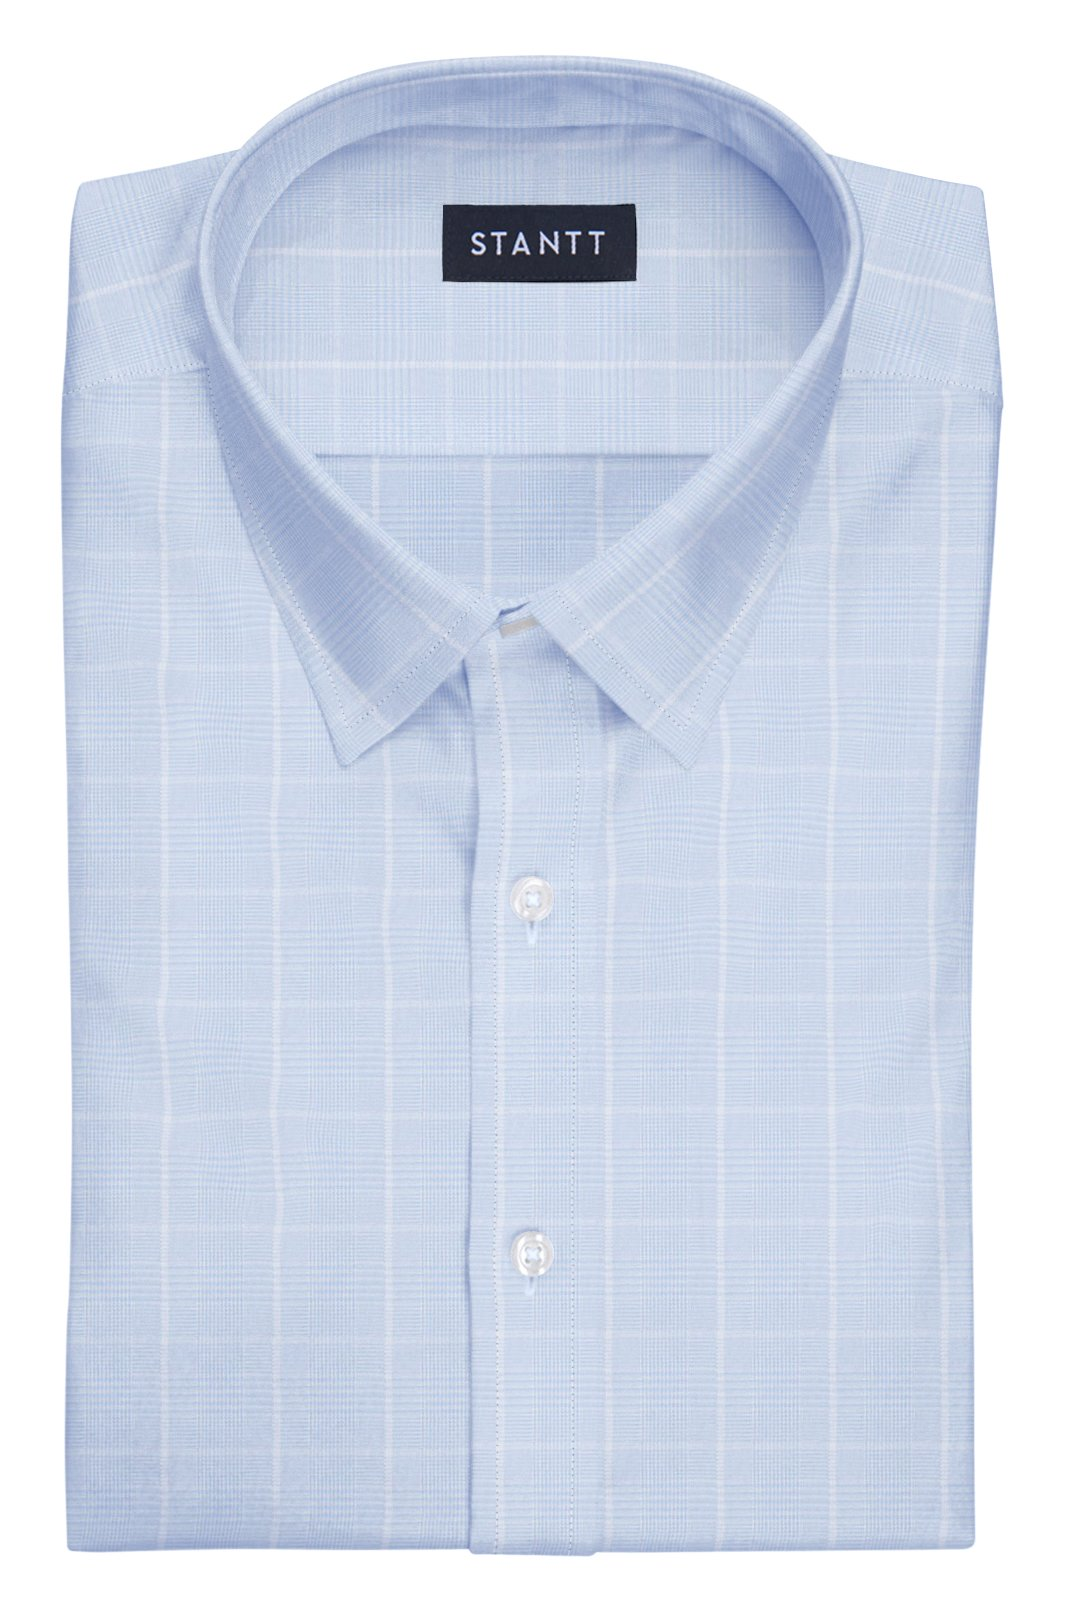 Wrinkle-Resistant Sky Blue Glen Plaid: Semi-Spread Collar, Barrel Cuff